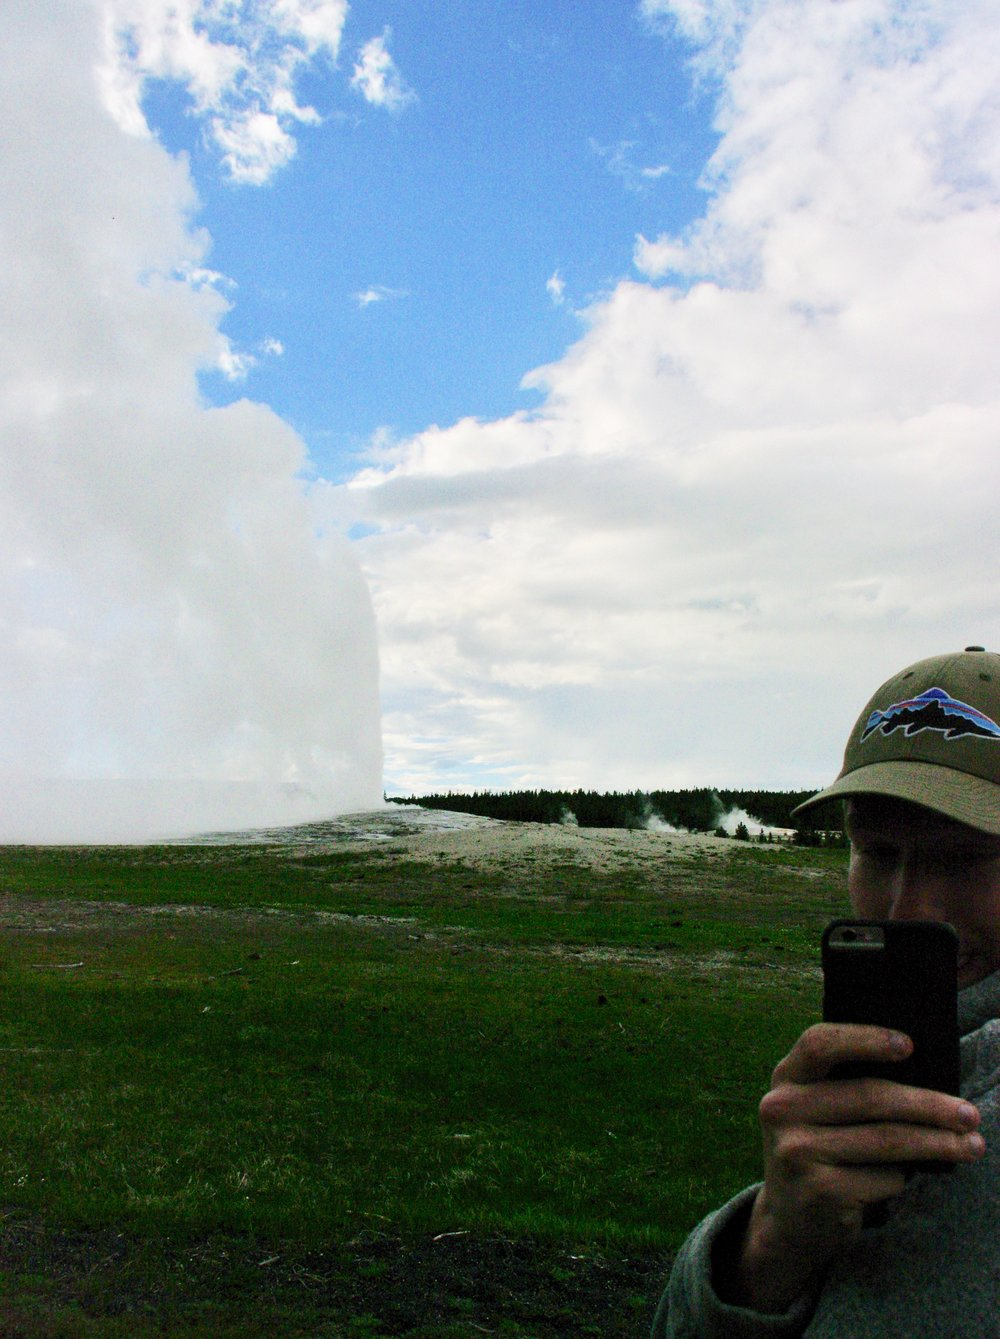 Ike taking a picture of me taking a picture of Old Faithful